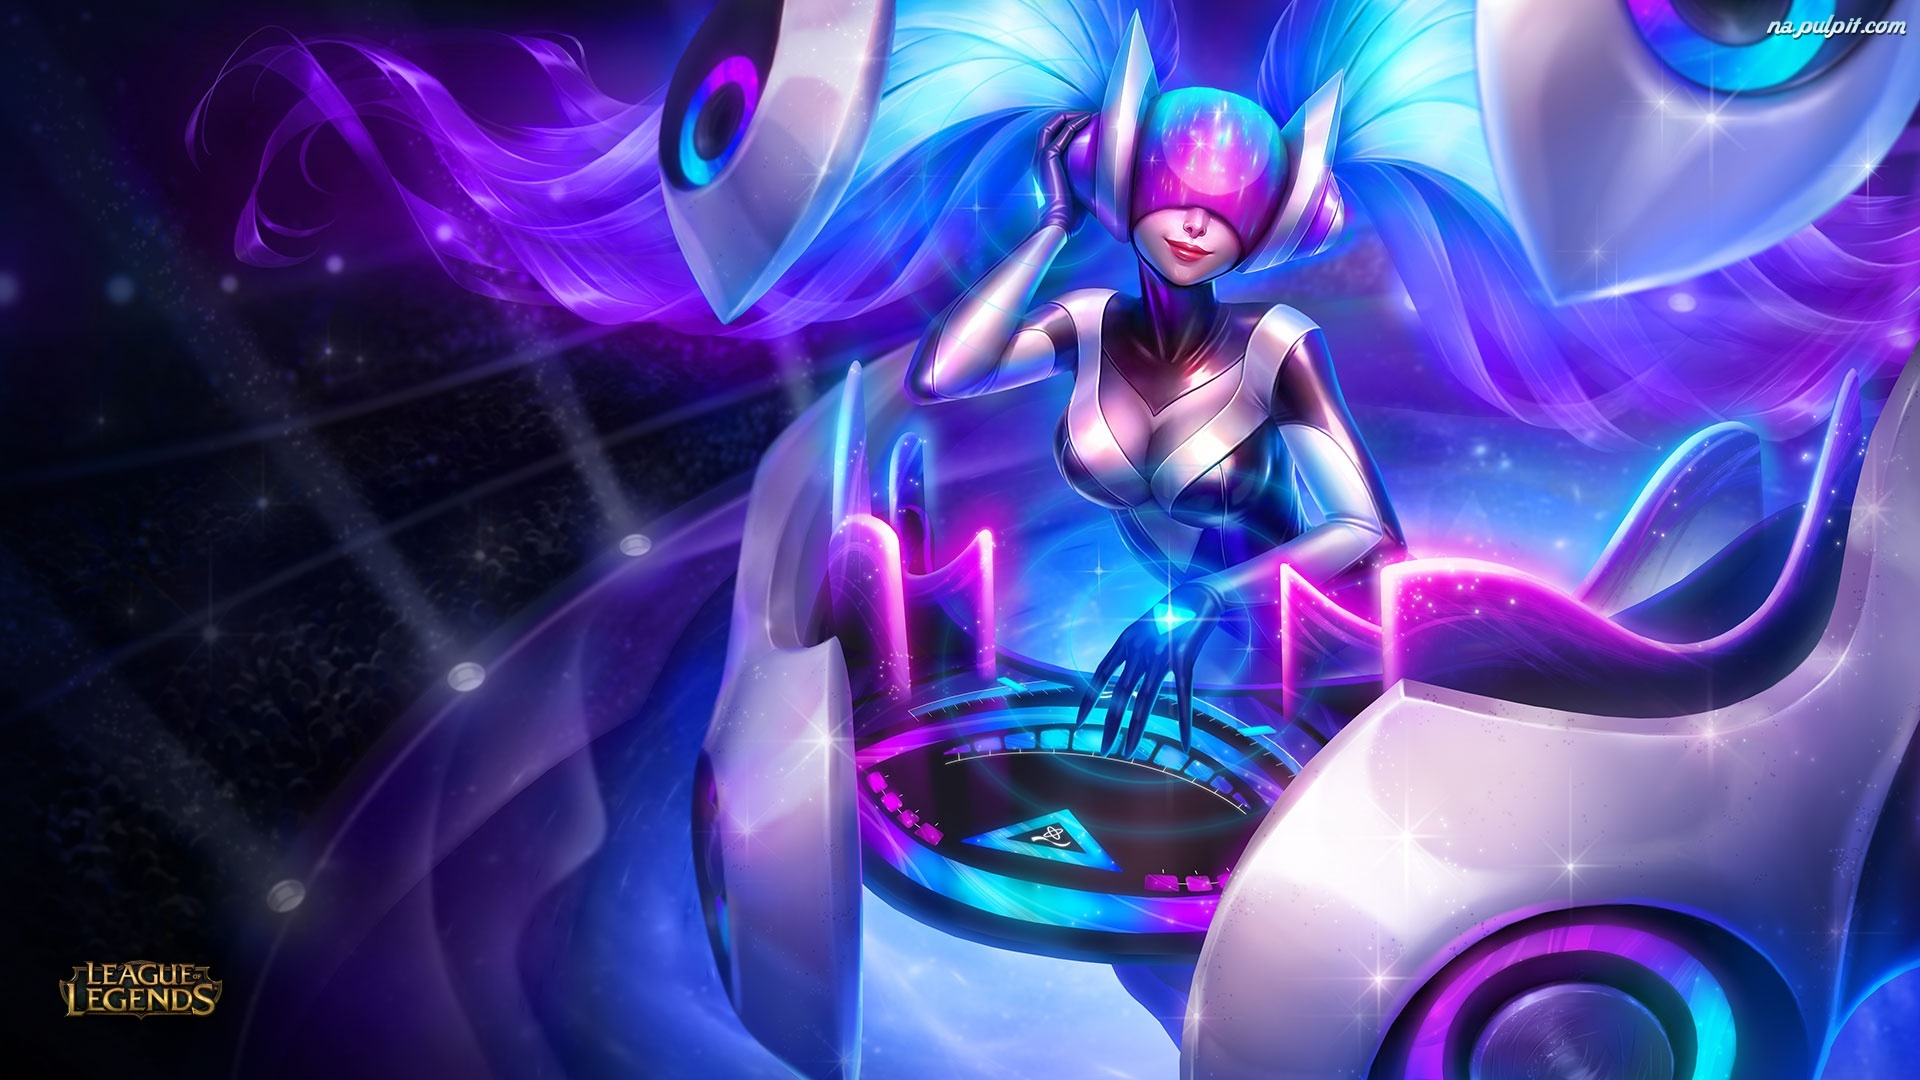 DJ, Sona, League of legends